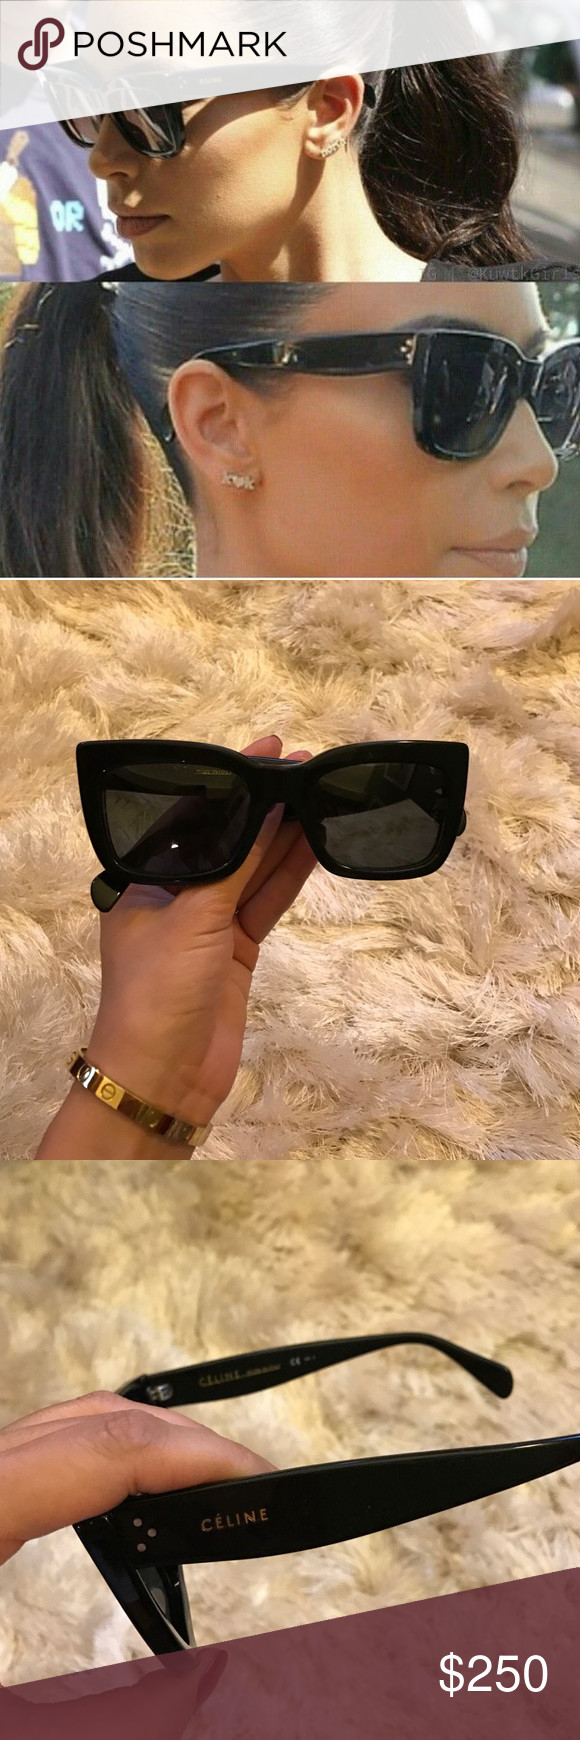 bd9a28d79643a Celine black sunglasses as seen on Kim K Black Celine sunglasses as seen on Kim  Kardashian. Only worn a few times and in perfect condition.